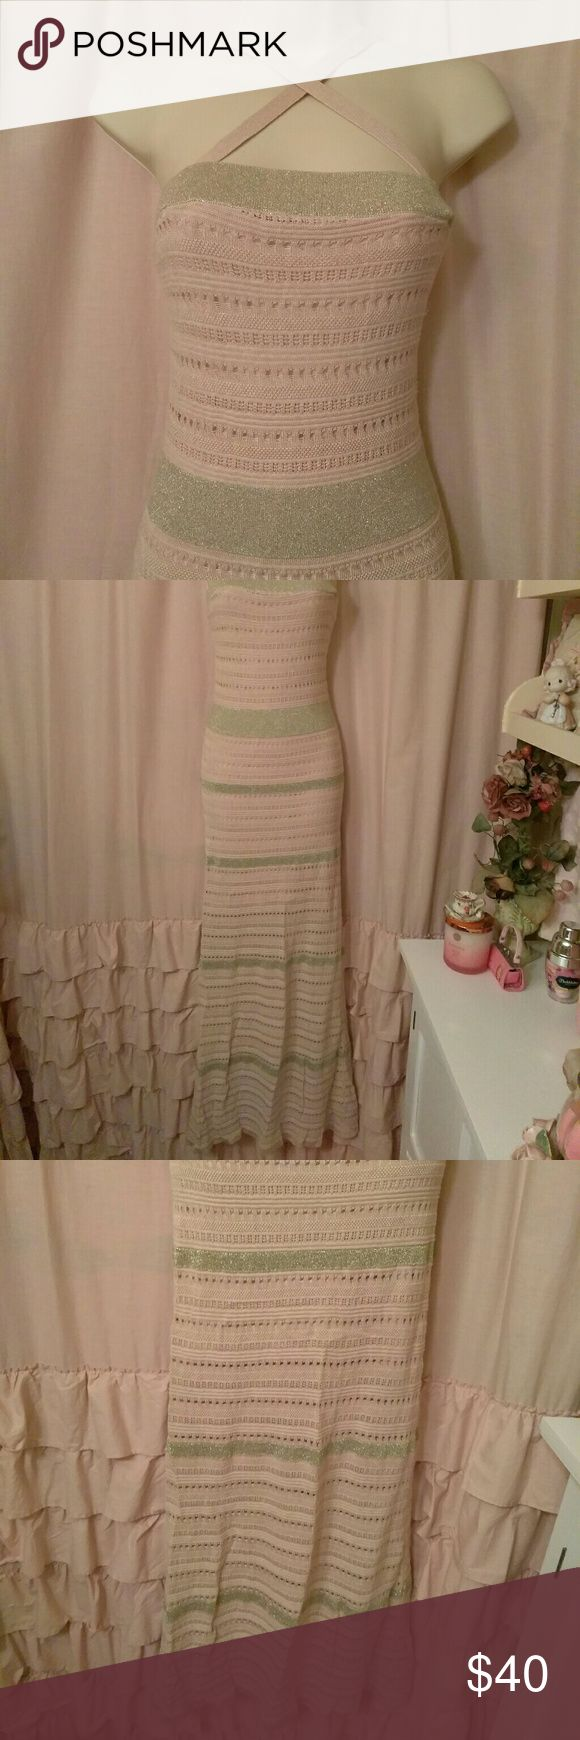 Victoria's Secret Knit Pink Gold Dress Adjustable and removeable straps, can be worn crossed, straight or strapless, pink and gold maxi Dress Victoria's Secret Dresses Maxi